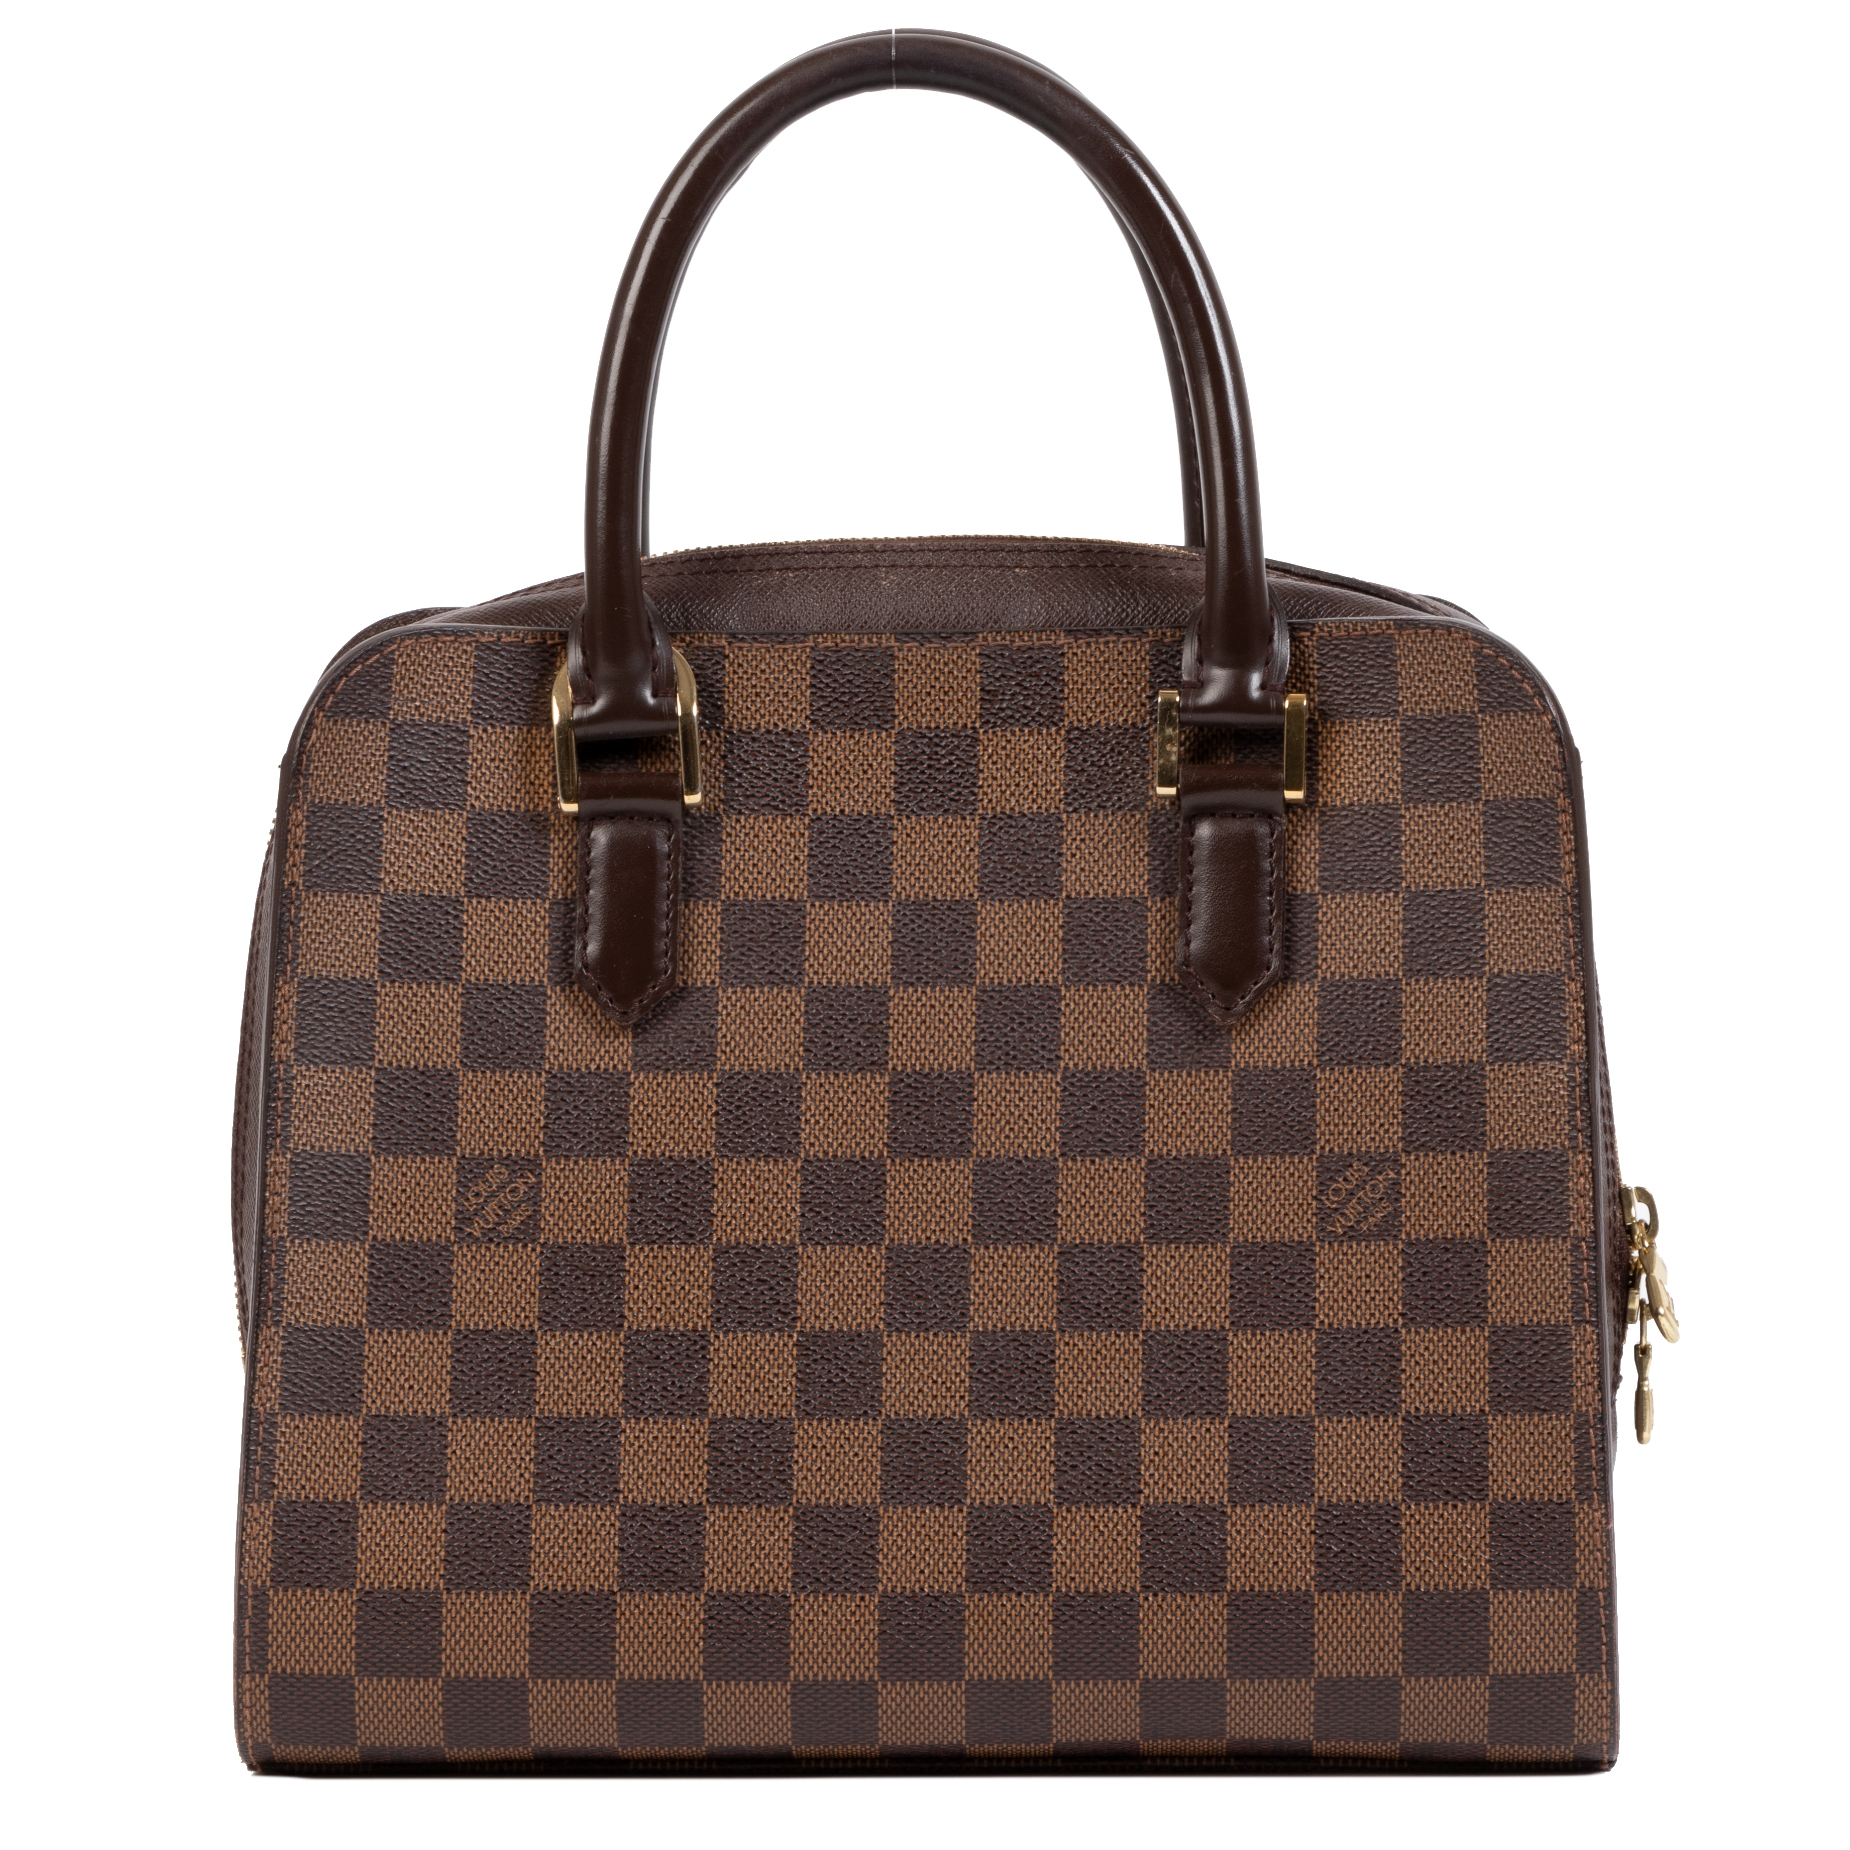 Louis Vuitton Damier Ebene Triana Top Handle Bag